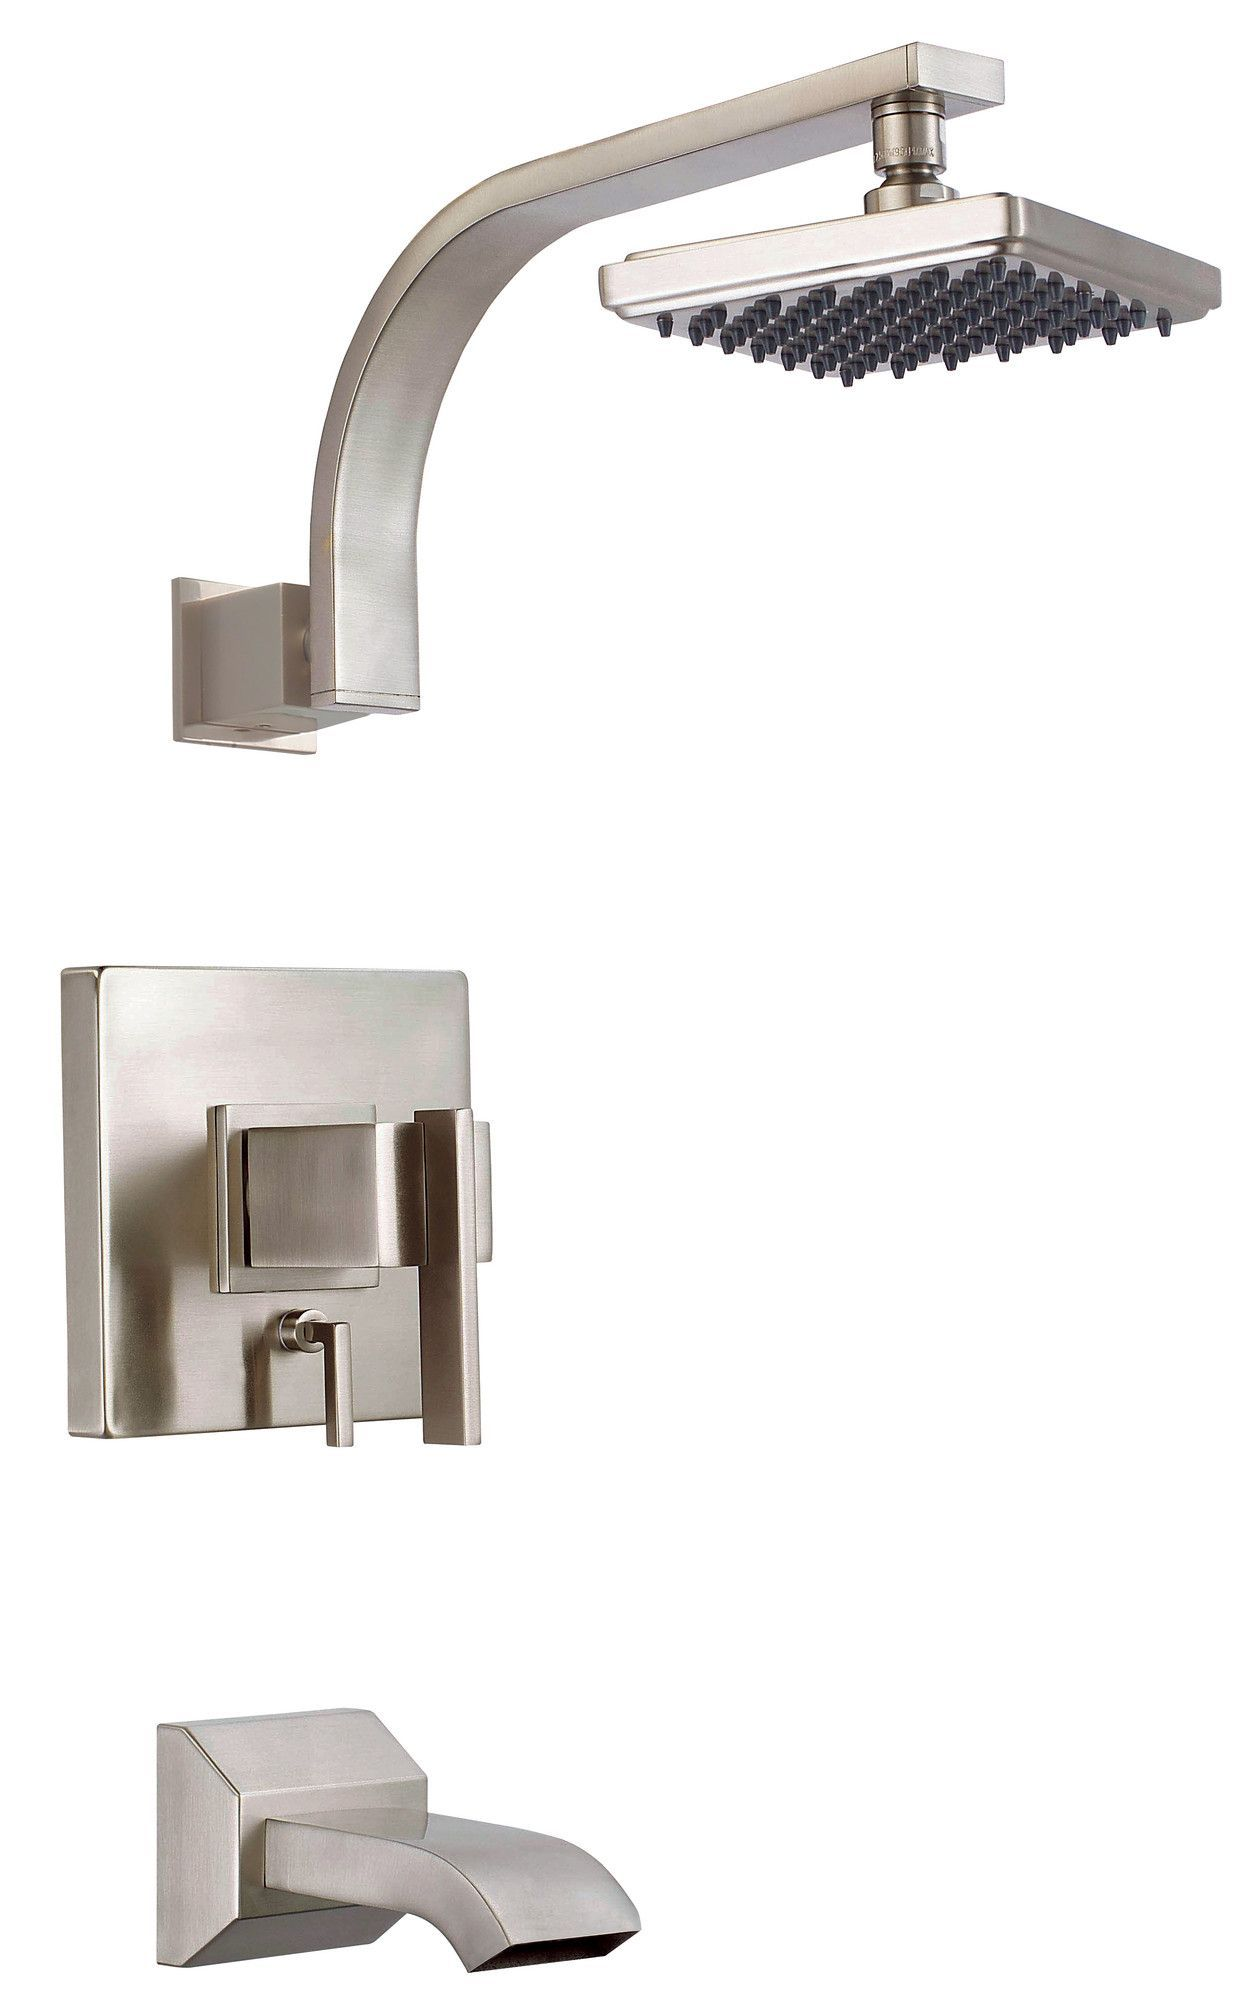 Sirius Tub Faucet and Shower Head with Lever Handle | Products ...